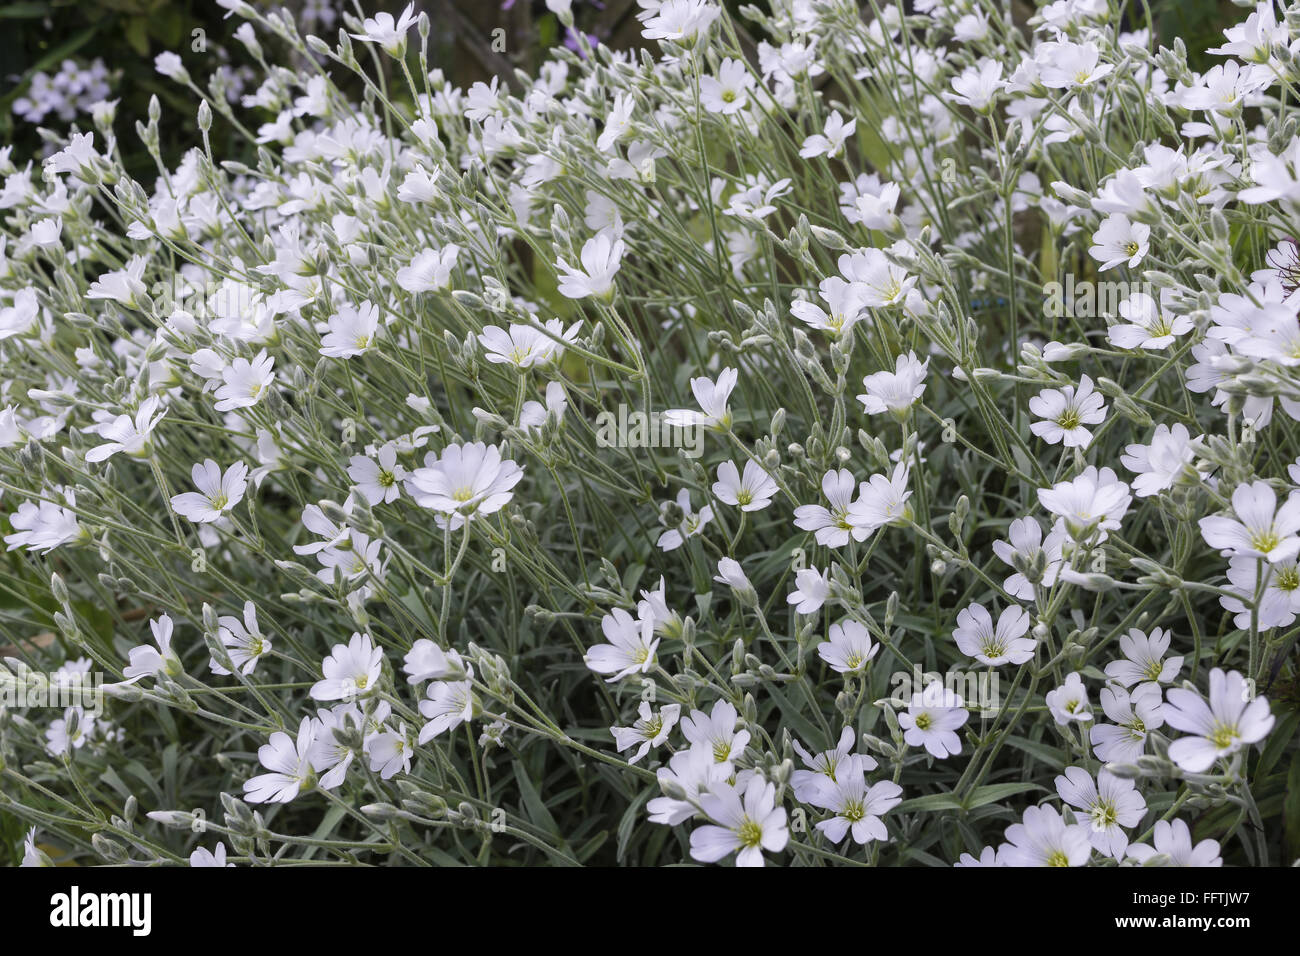 Pretty white perennial flowers pictures inspiration wedding and white perennial flowers images flower decoration ideas mightylinksfo Images